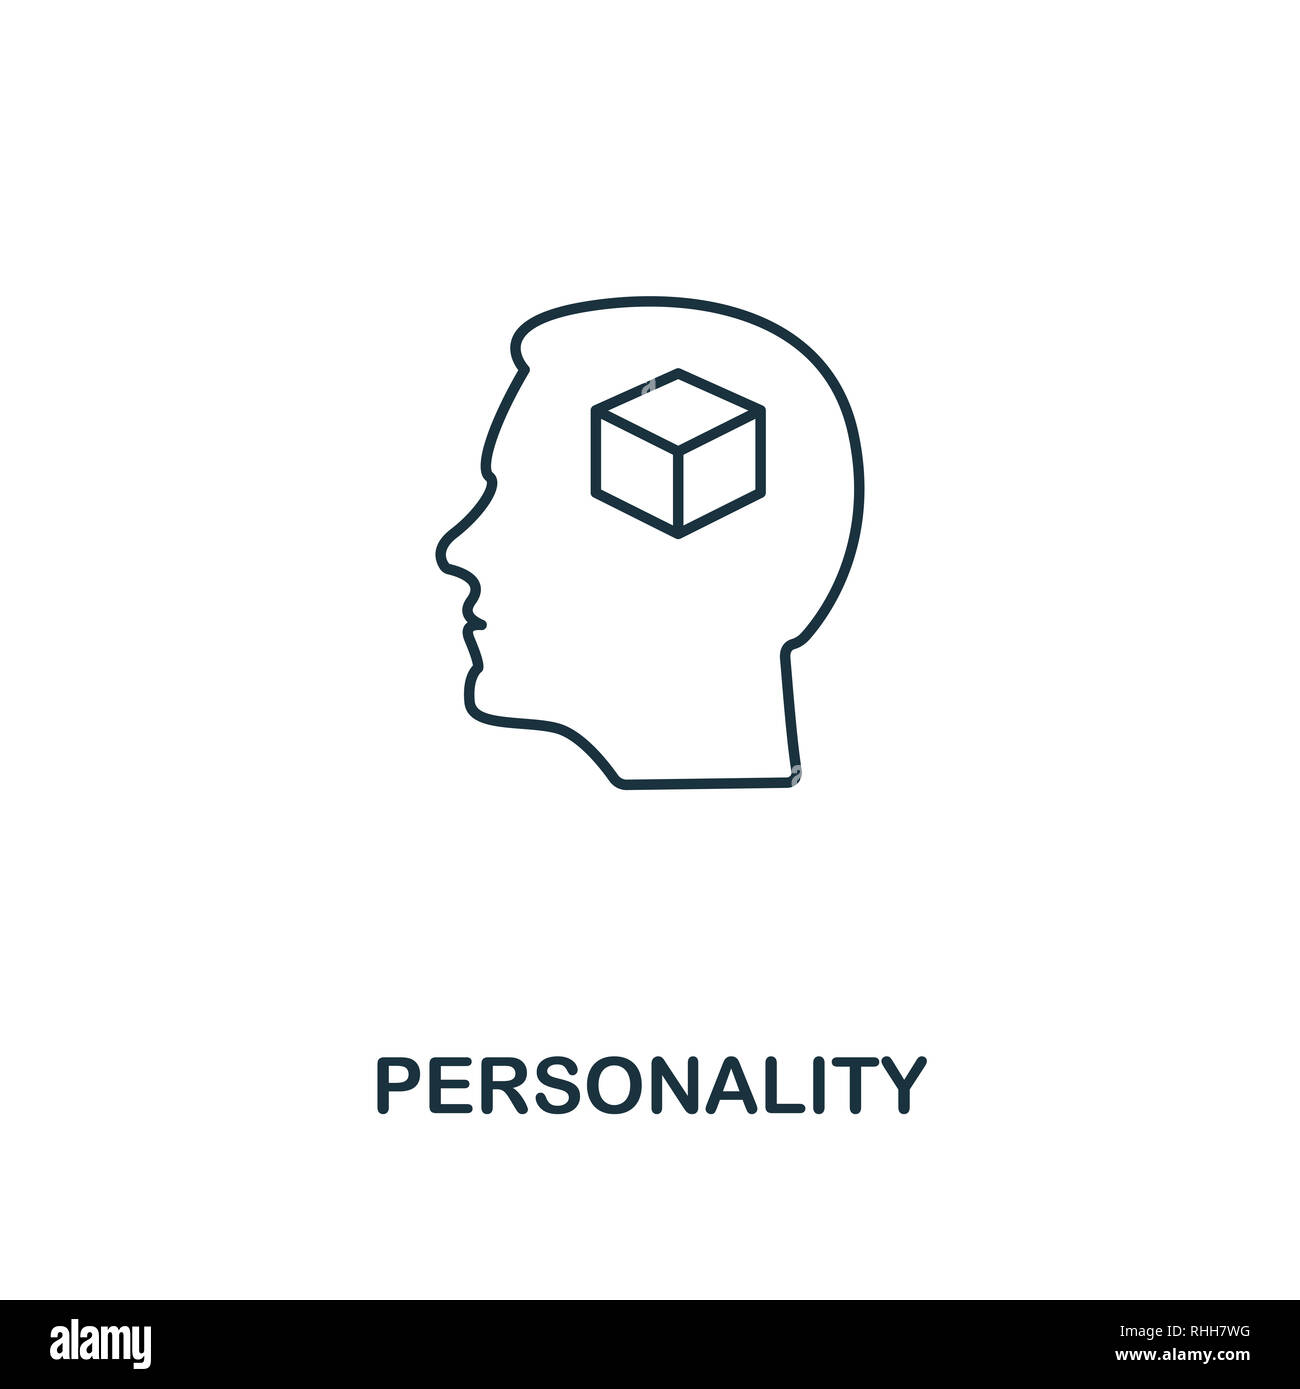 Personality icon. Thin outline creativePersonality design from soft skills collection. Web design, apps, software and print usage. - Stock Image